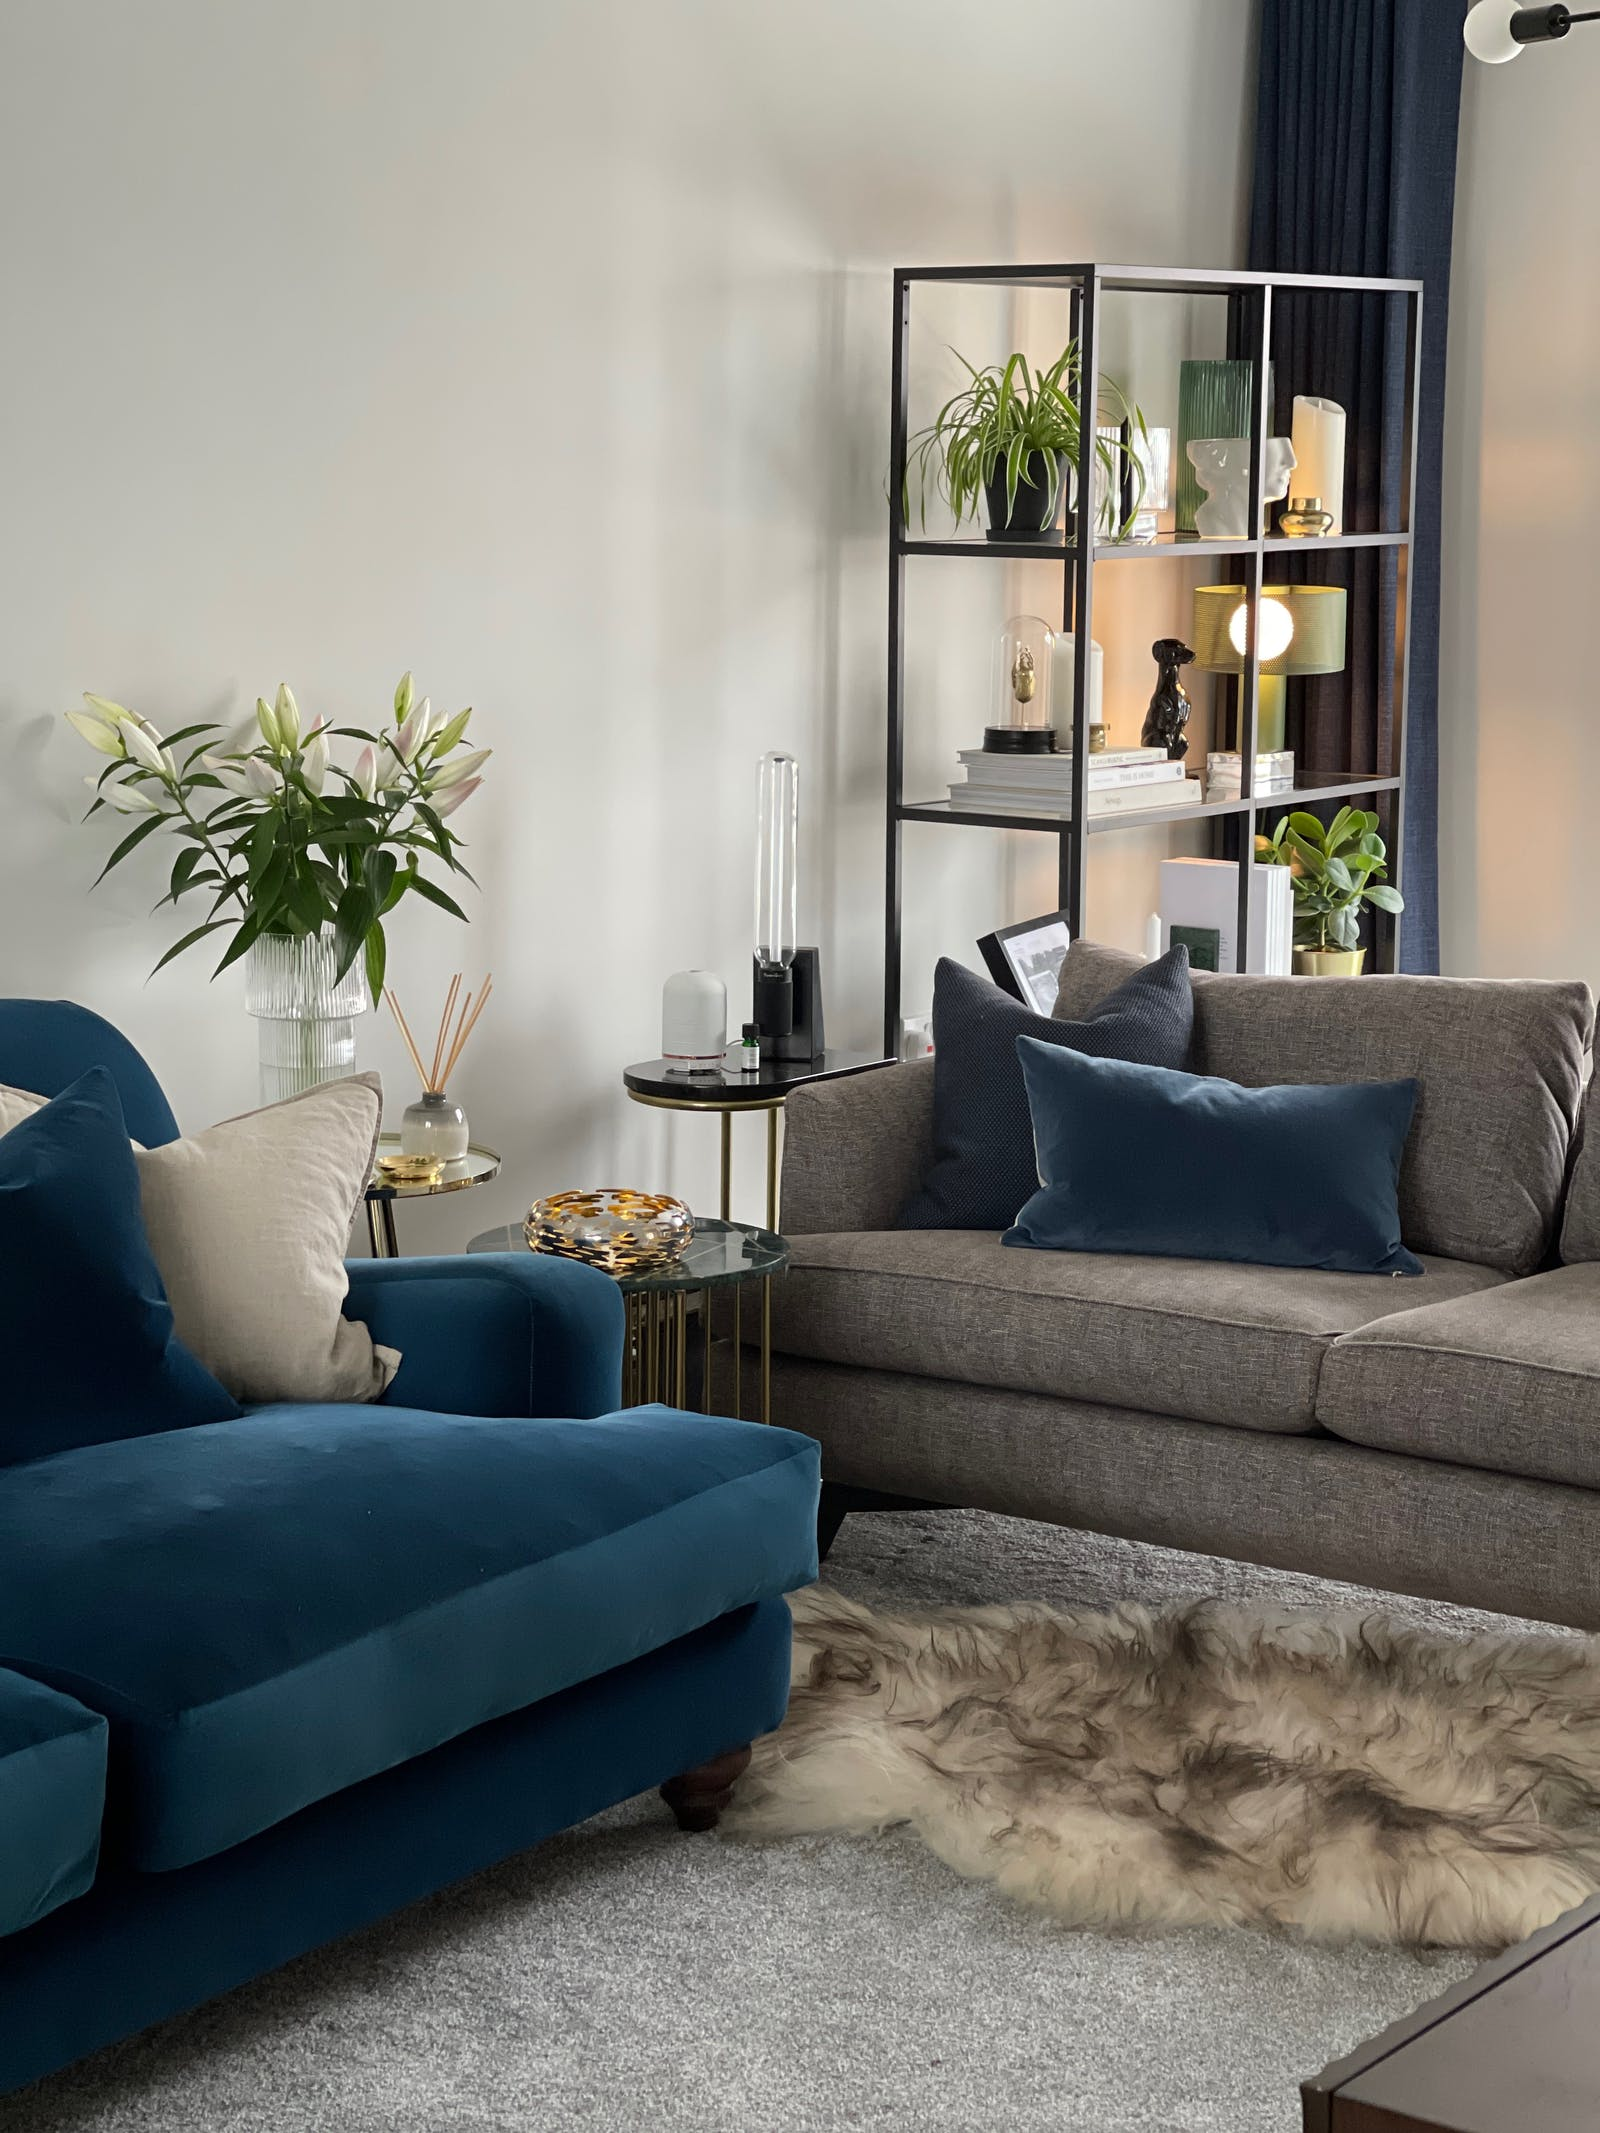 Scandinavian inspired living room with blue and grey furnishings